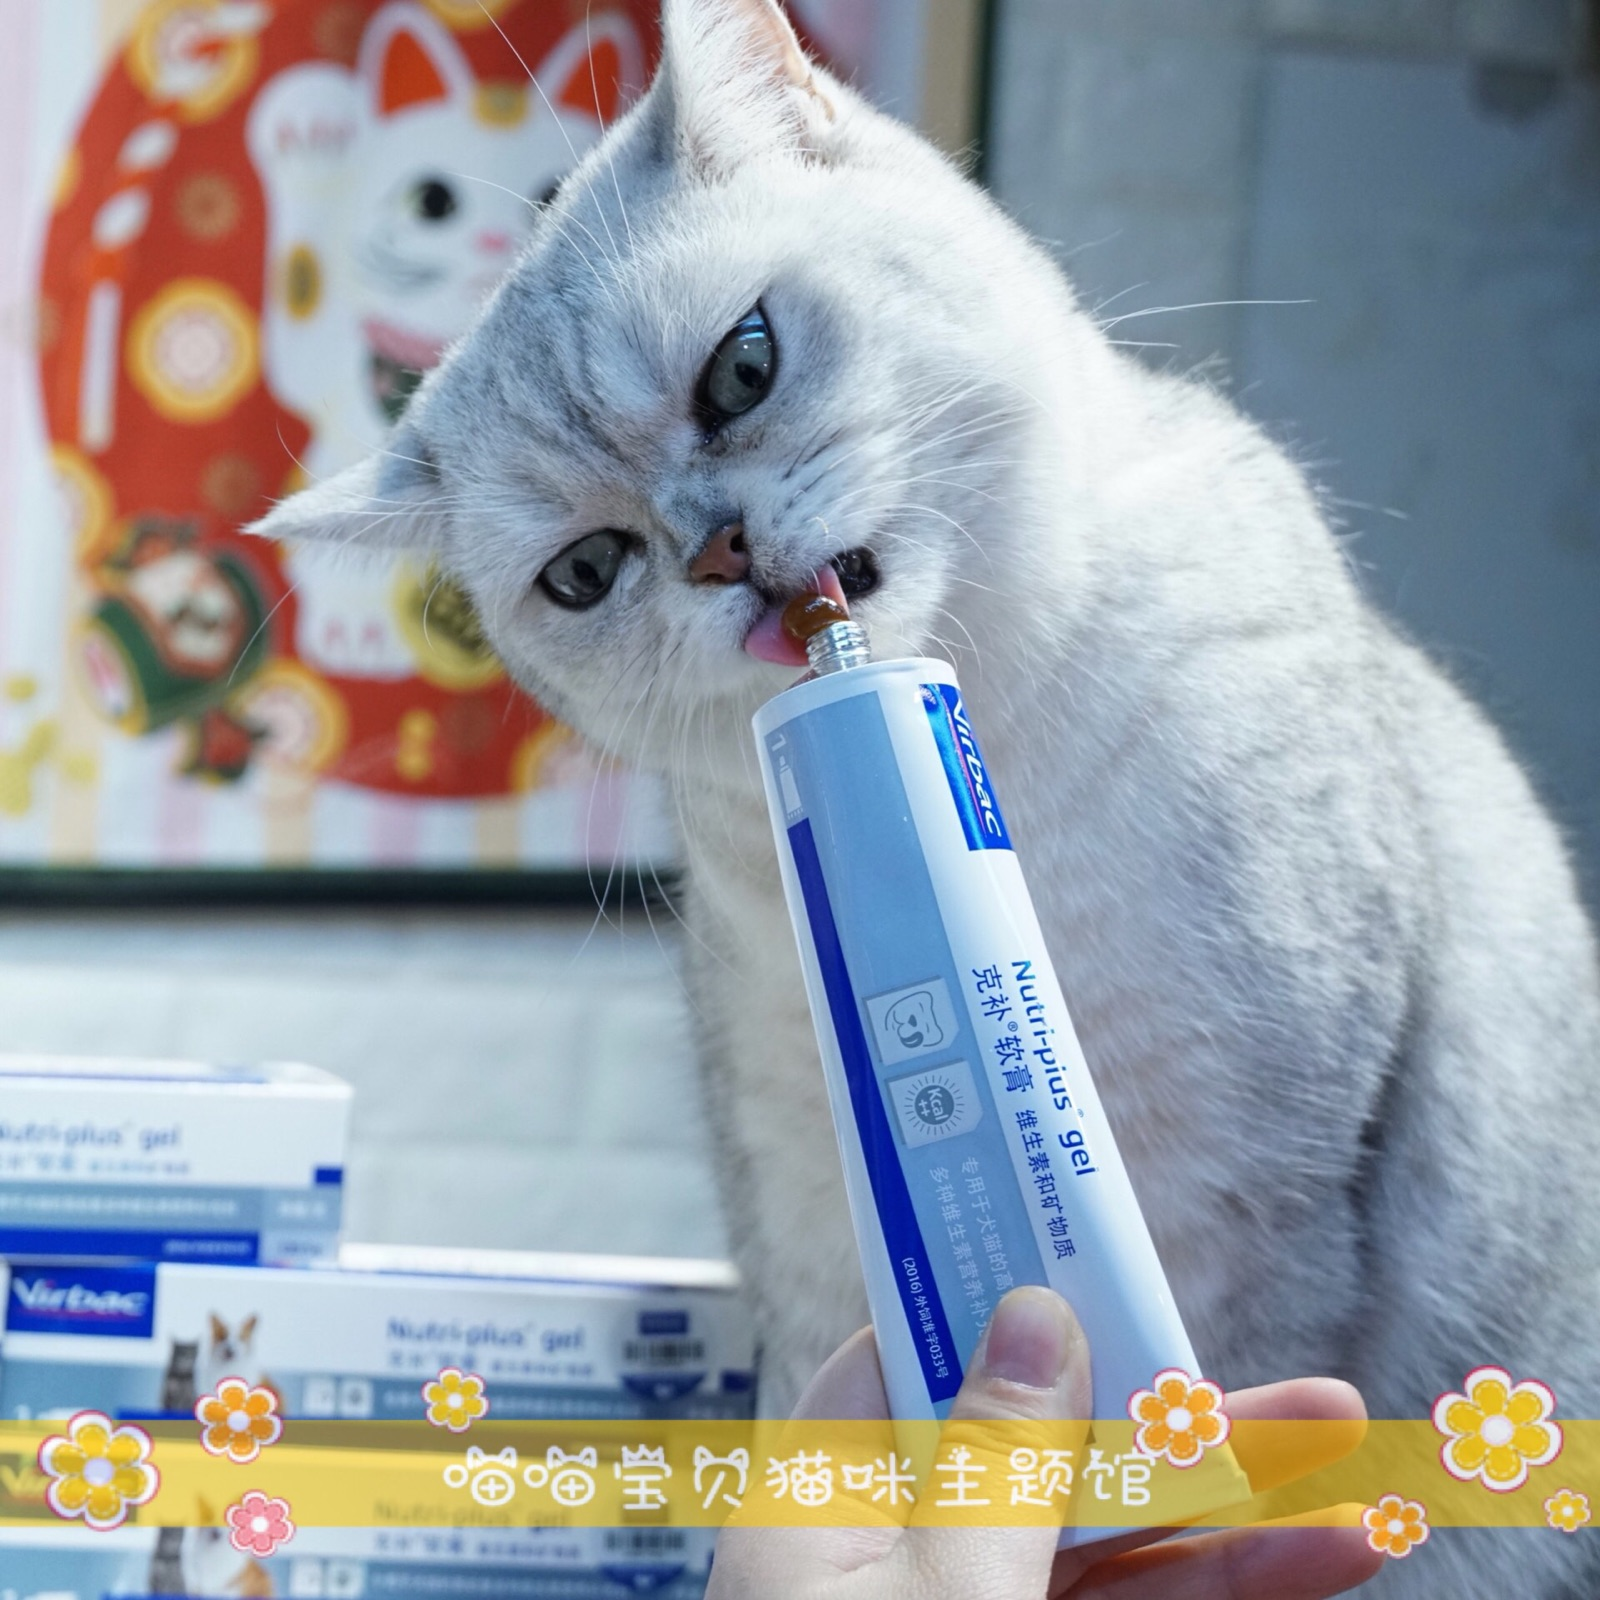 Meow baby French vicvirbac Kebu ointment cat dog nutrition cream vitamin pet health products